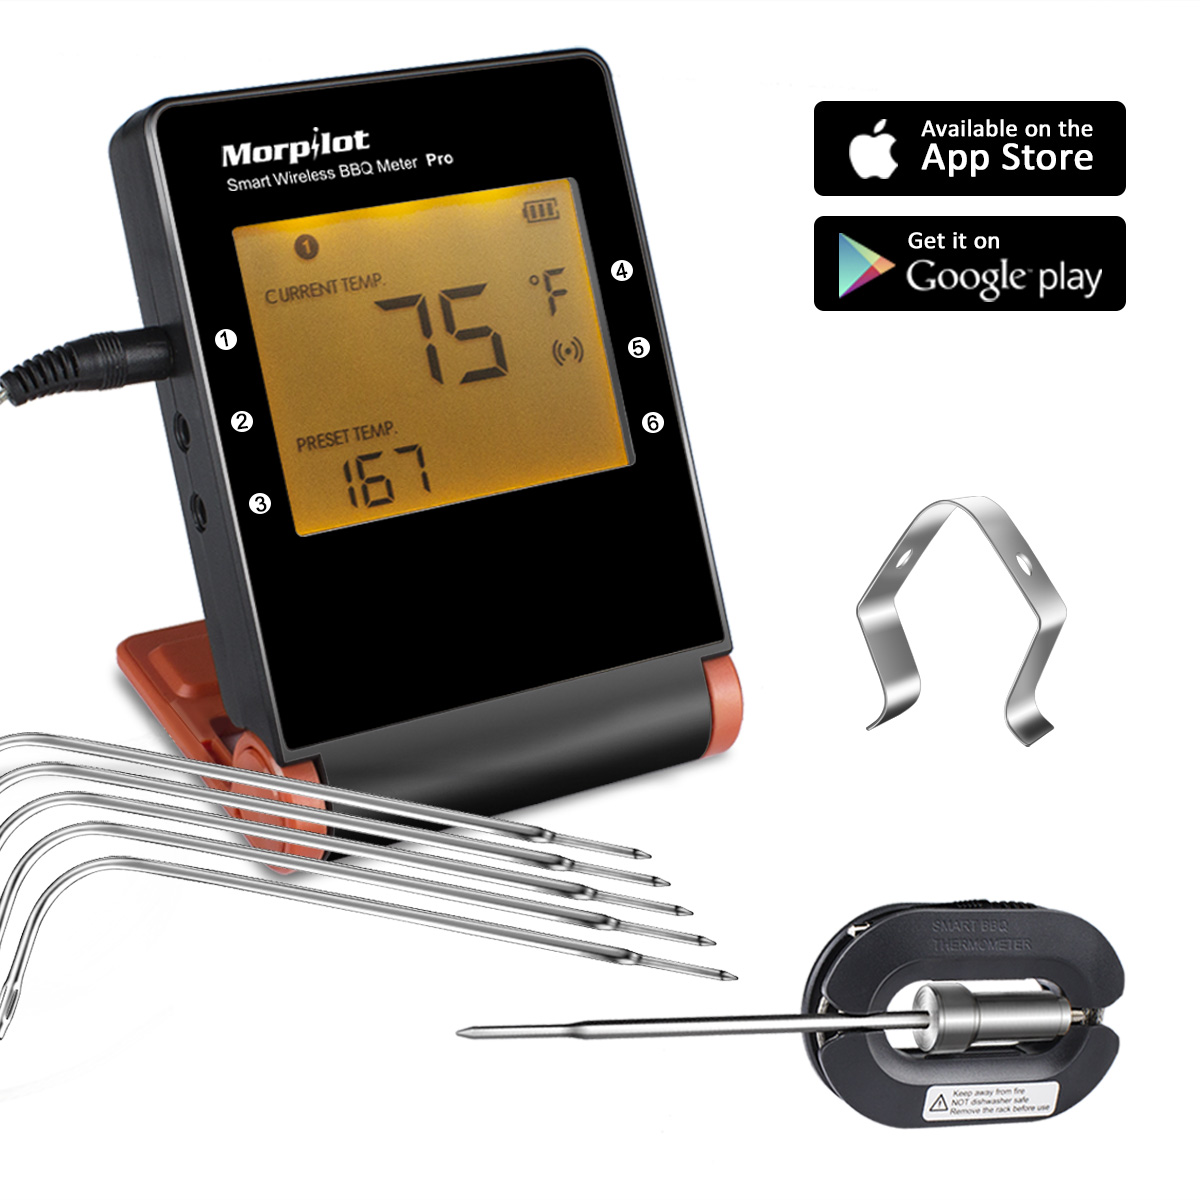 Wireless Meat Thermometers for Grill Smoker, Morpilot Bluetooth BBQ Grill Thermometer Smart Remote Digital Cooking Food with 6 Probes for Outdoor Grilling Smoker Oven Griddle Indoor Kitchen